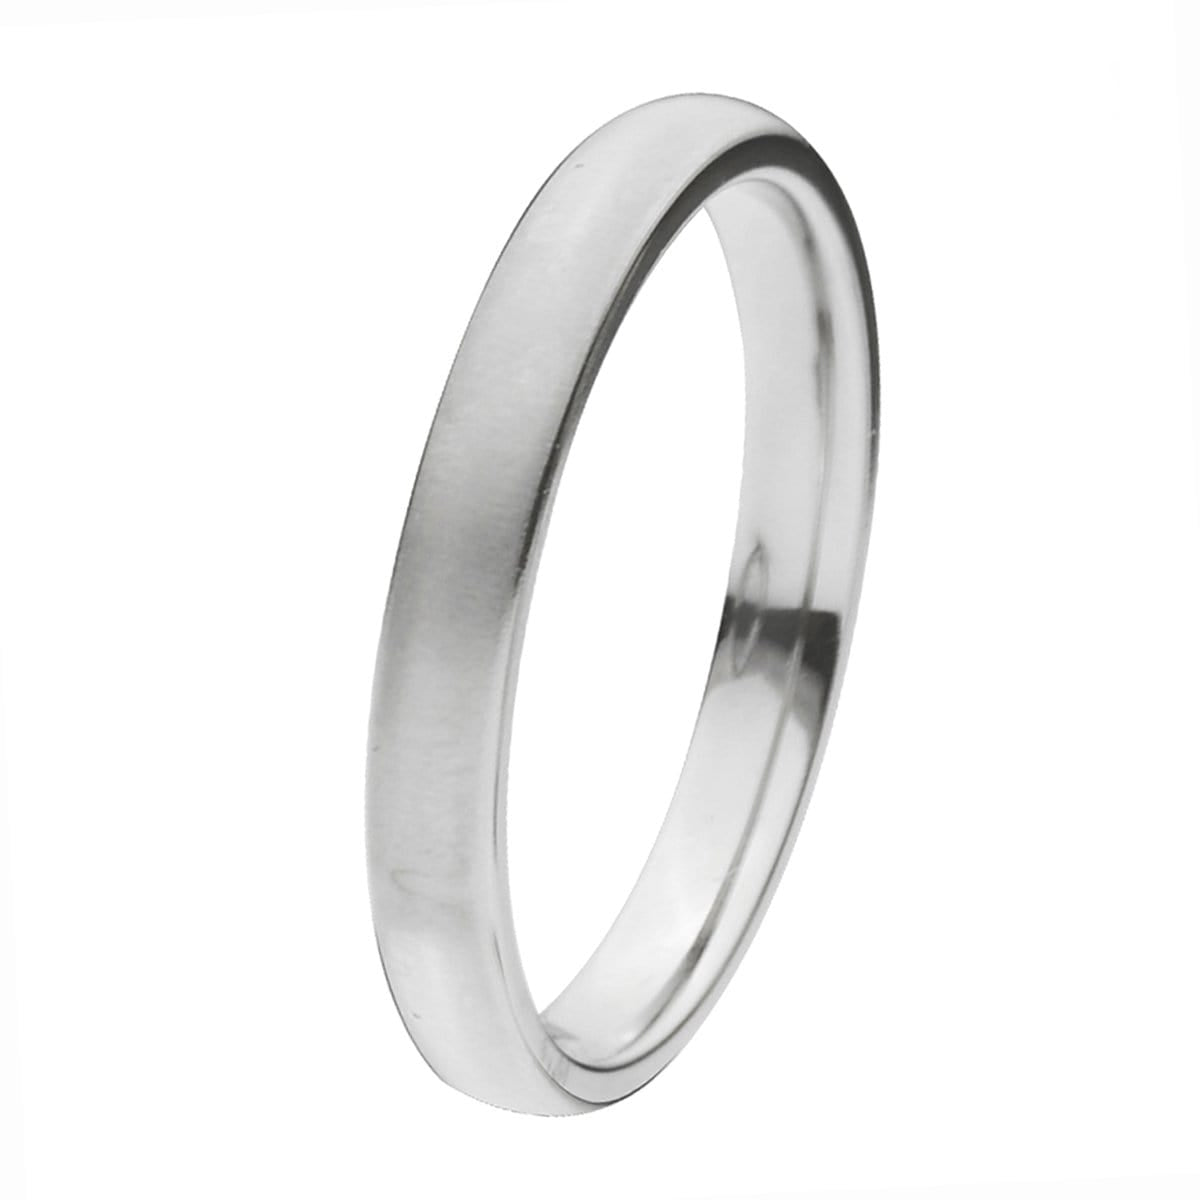 Silver Titanium Classic 3mm Matte Band Ring Rings